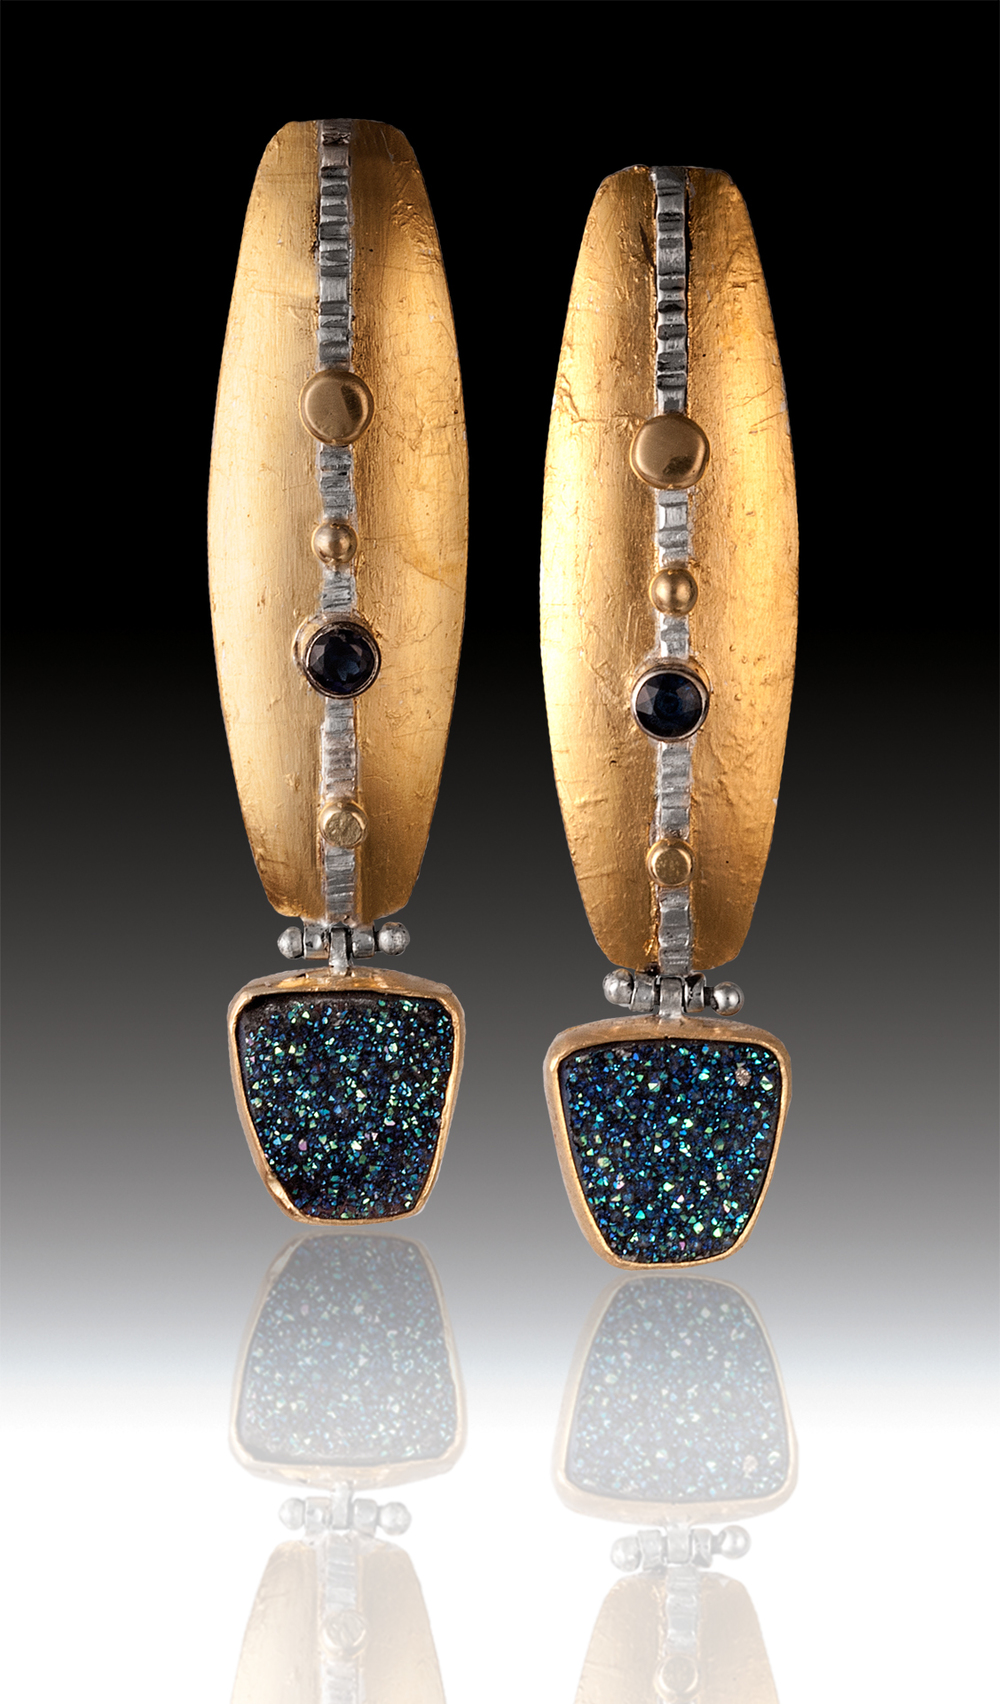 Sandy Harris Murphy, Contemporary Jewelry Design